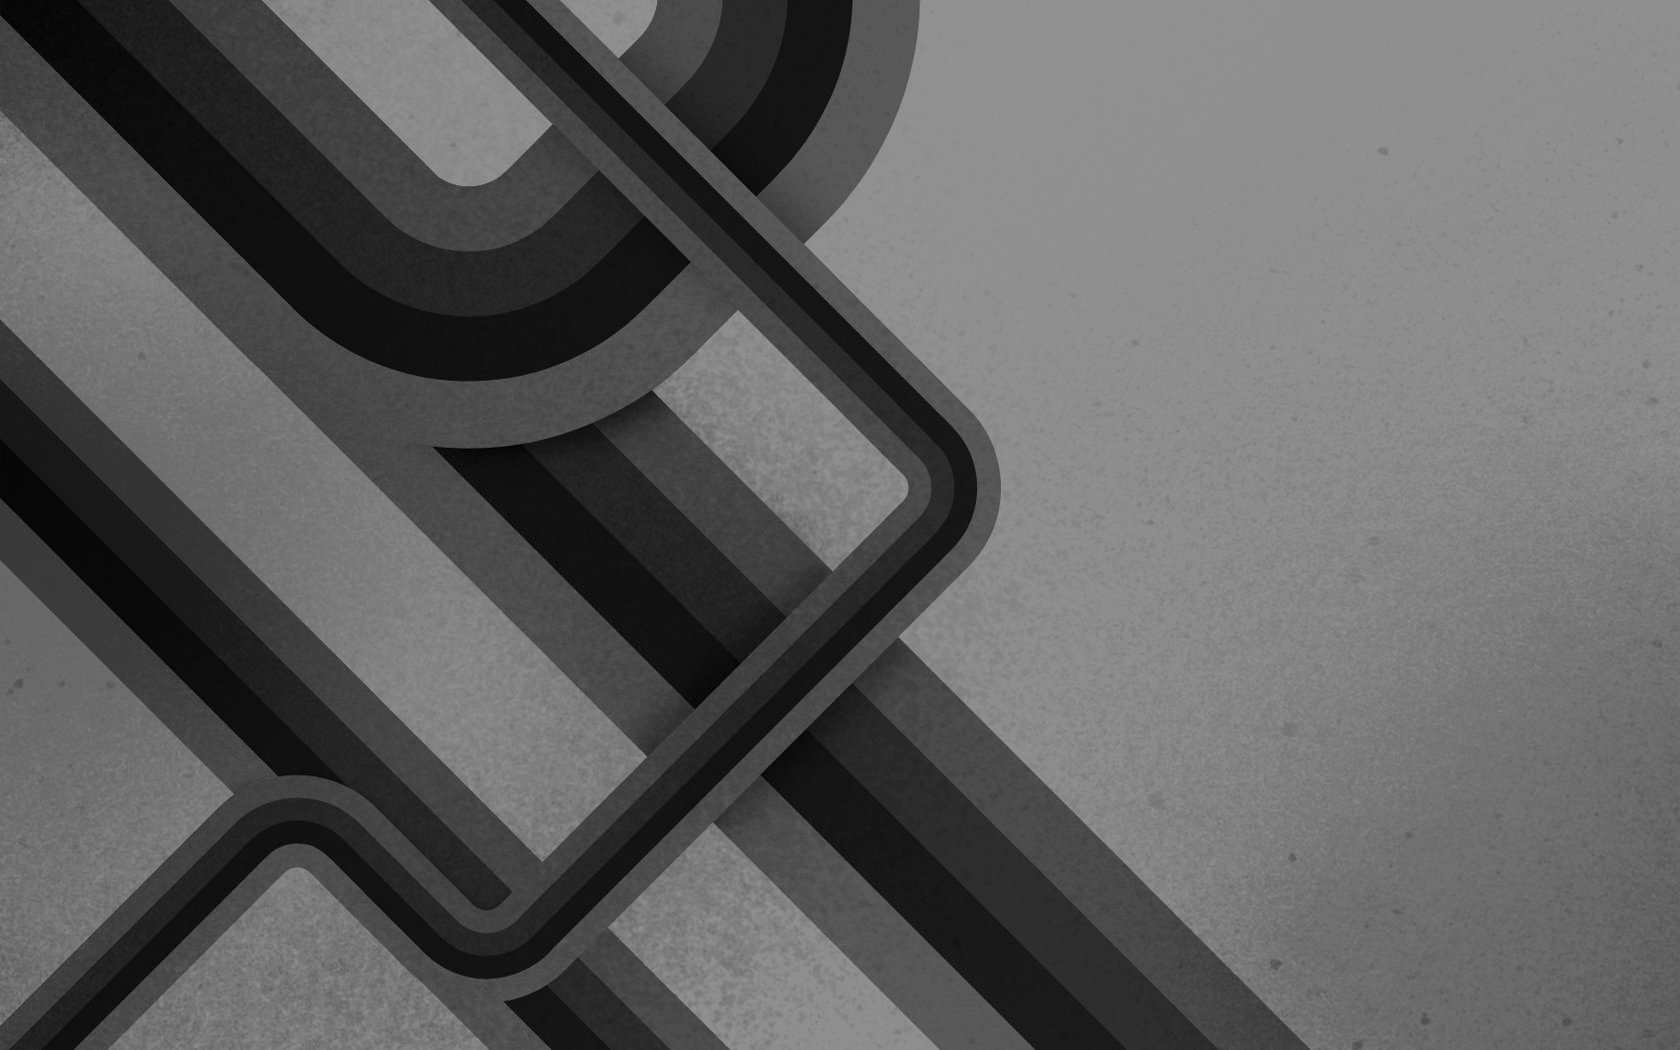 Abstract - Grey  Colors Shapes Pattern Texture CGI Artistic Abstract Wallpaper